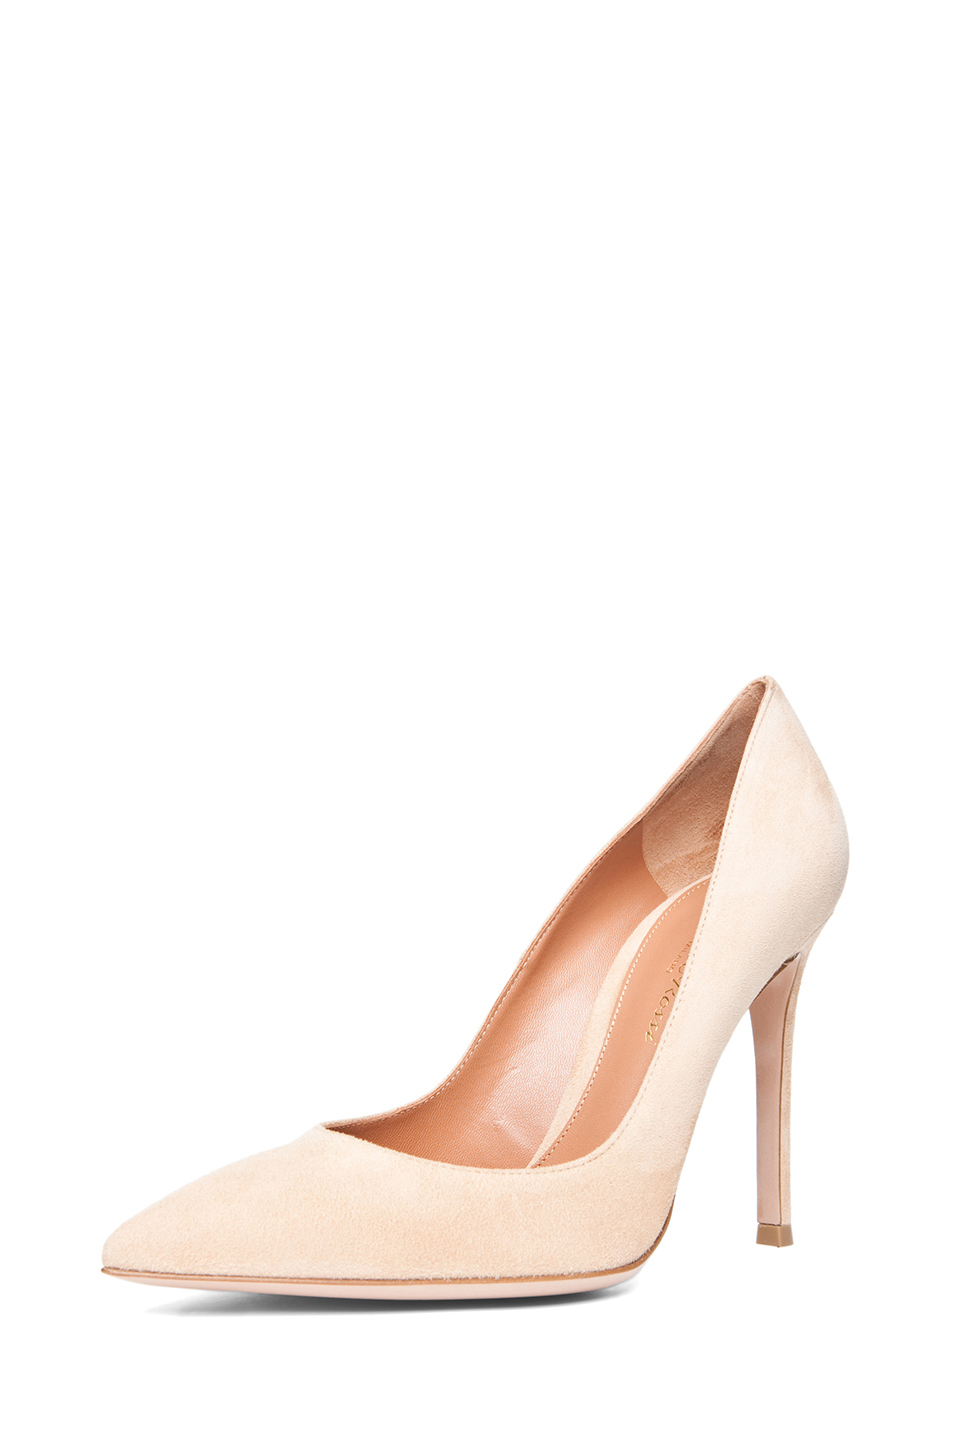 Suede pumps in nude